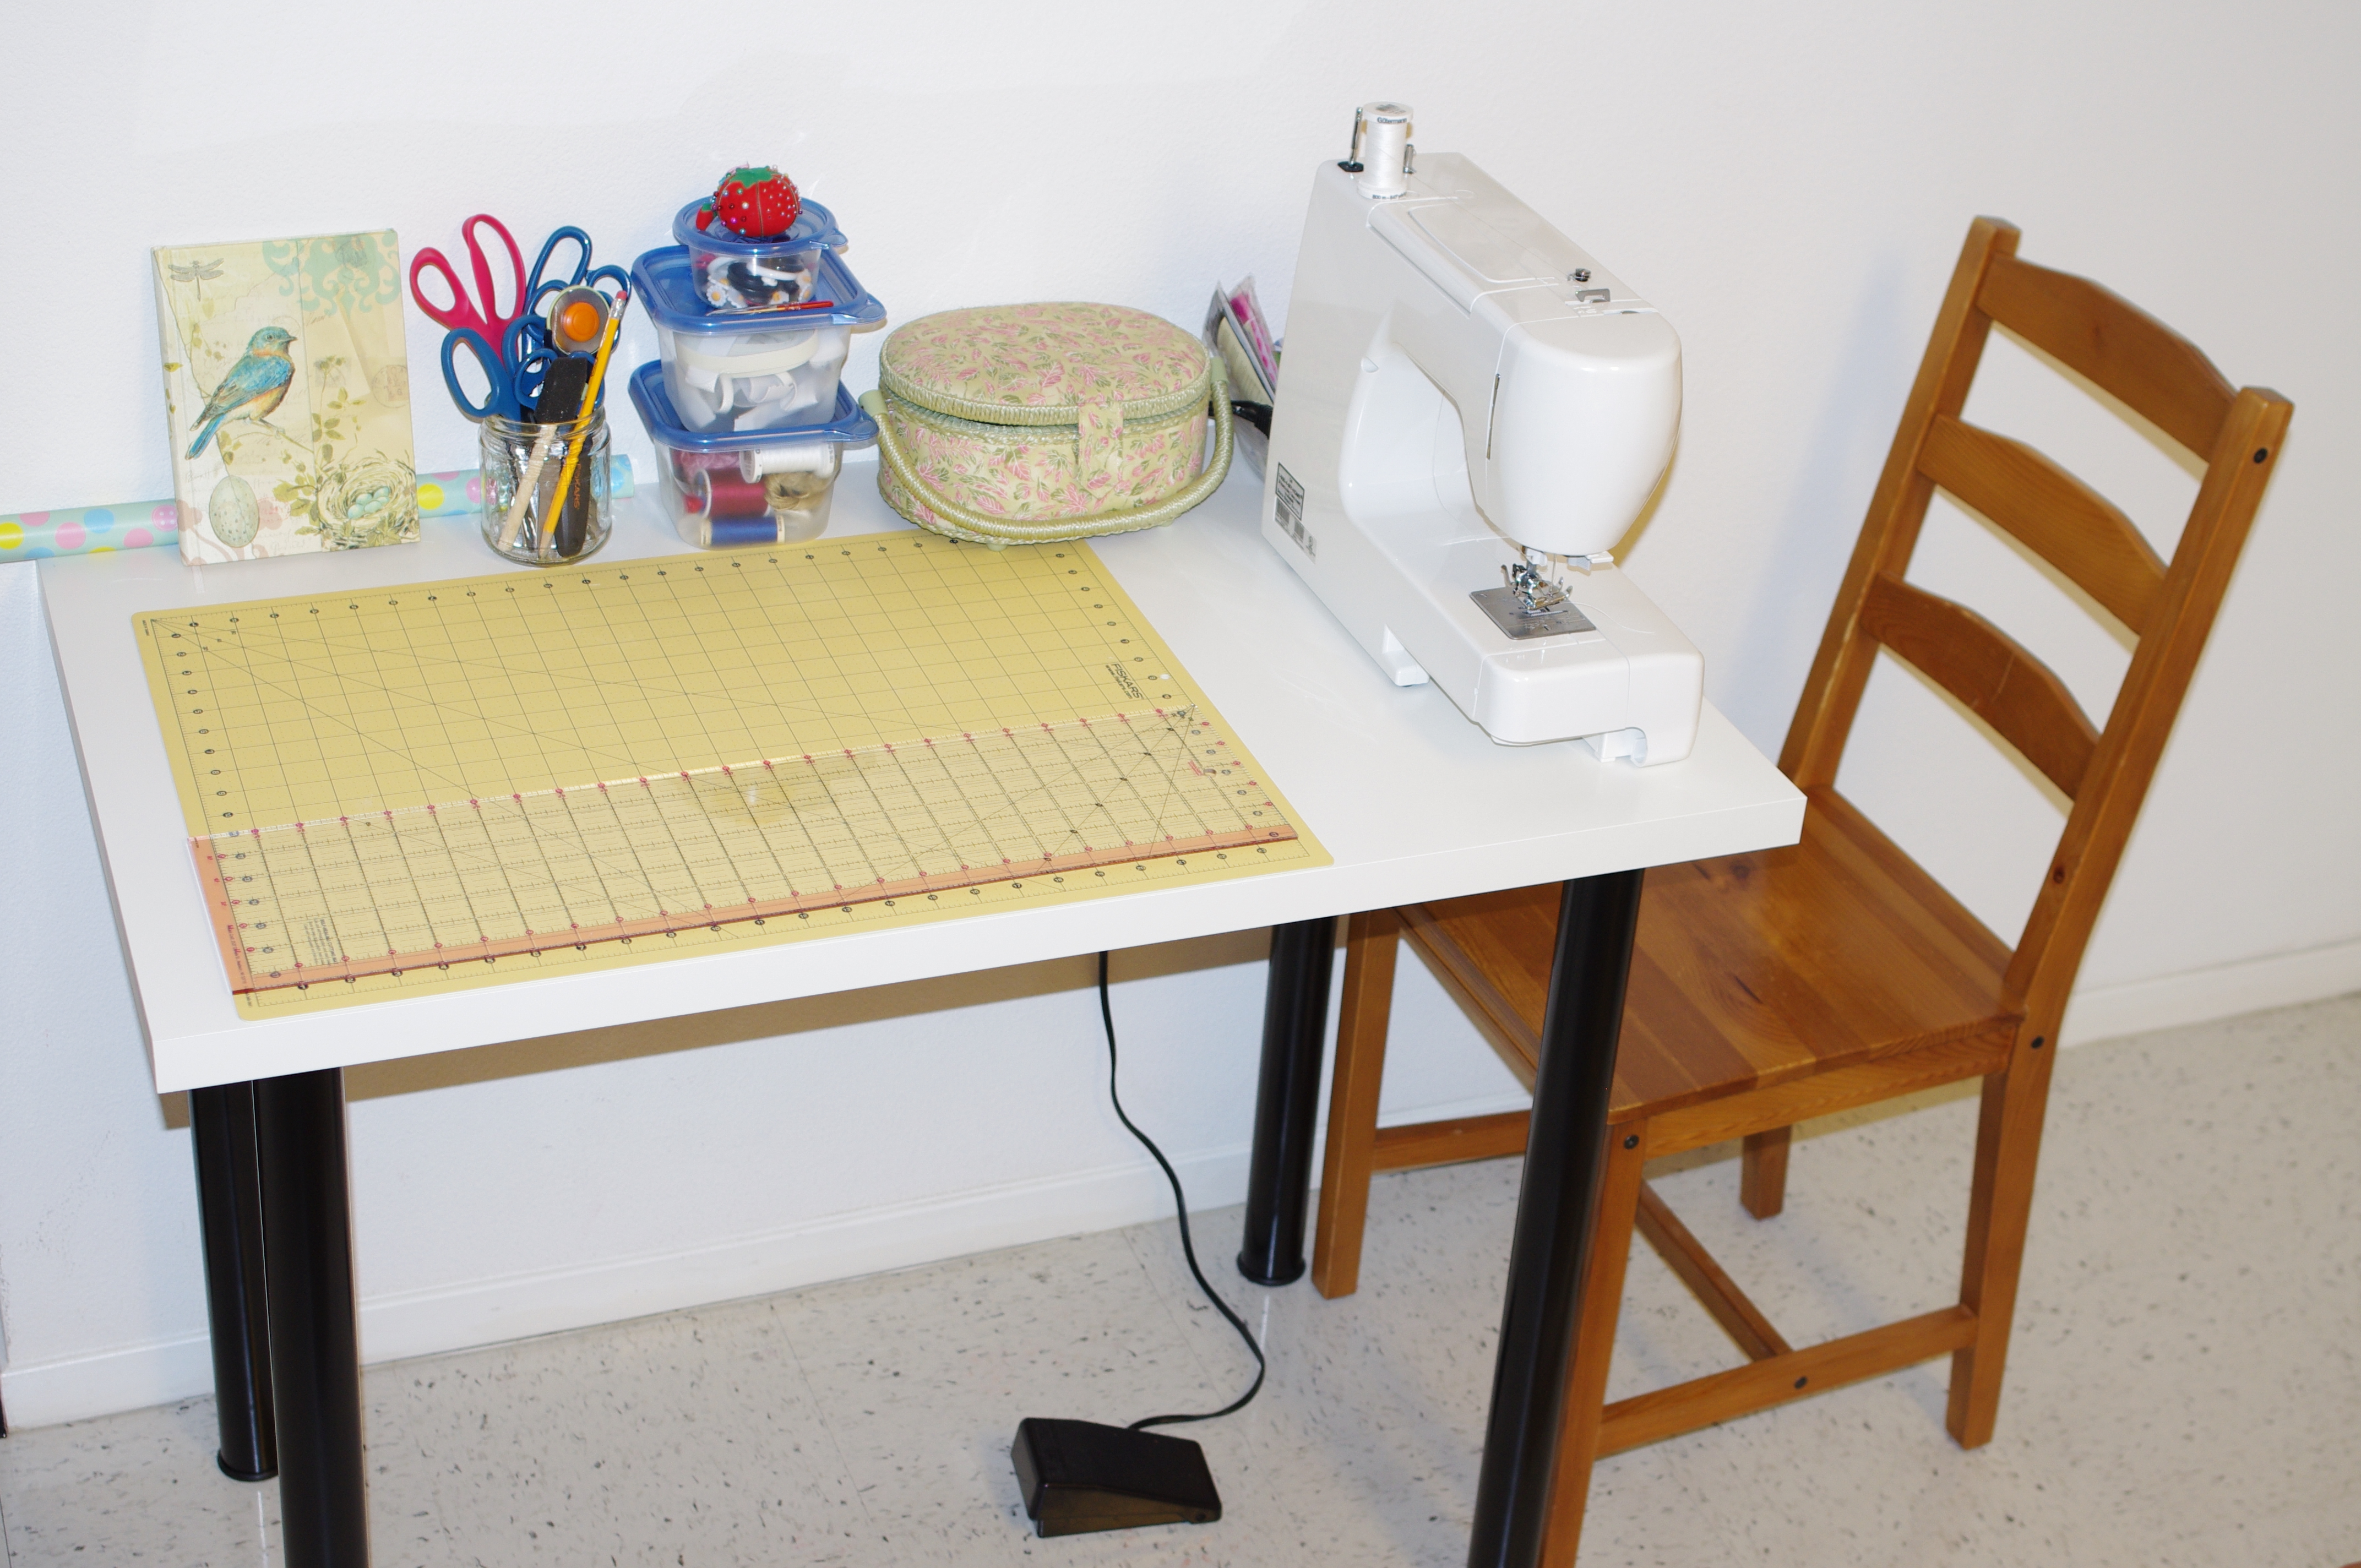 my poor husband has been putting up with all of my sewing stuff all over our kitchen table for the past few months that ive been sewing - Kitchen Table Sewing